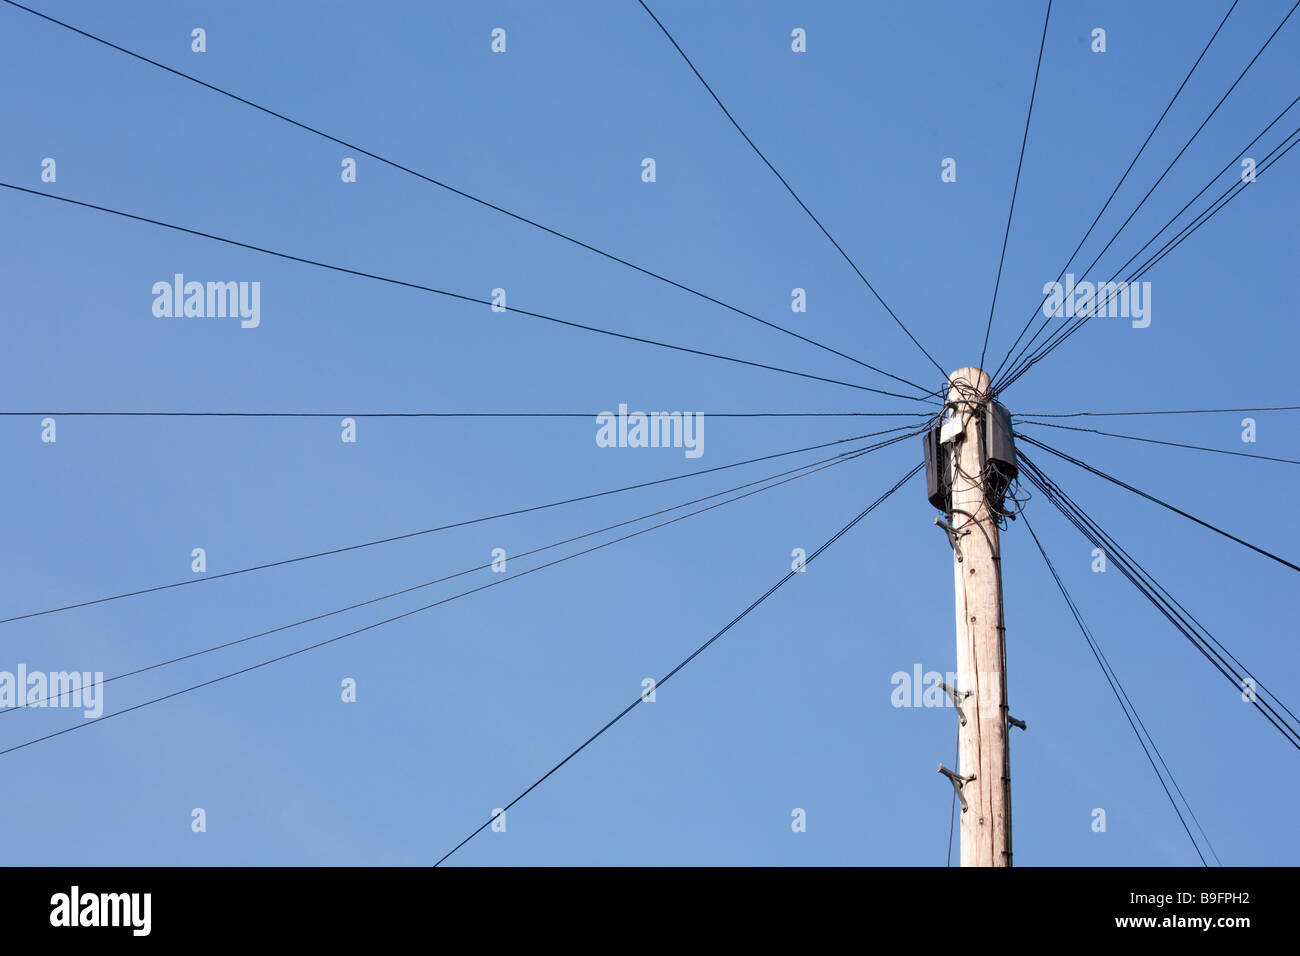 telephone (telegraph, uk) pole with wires radiating from it